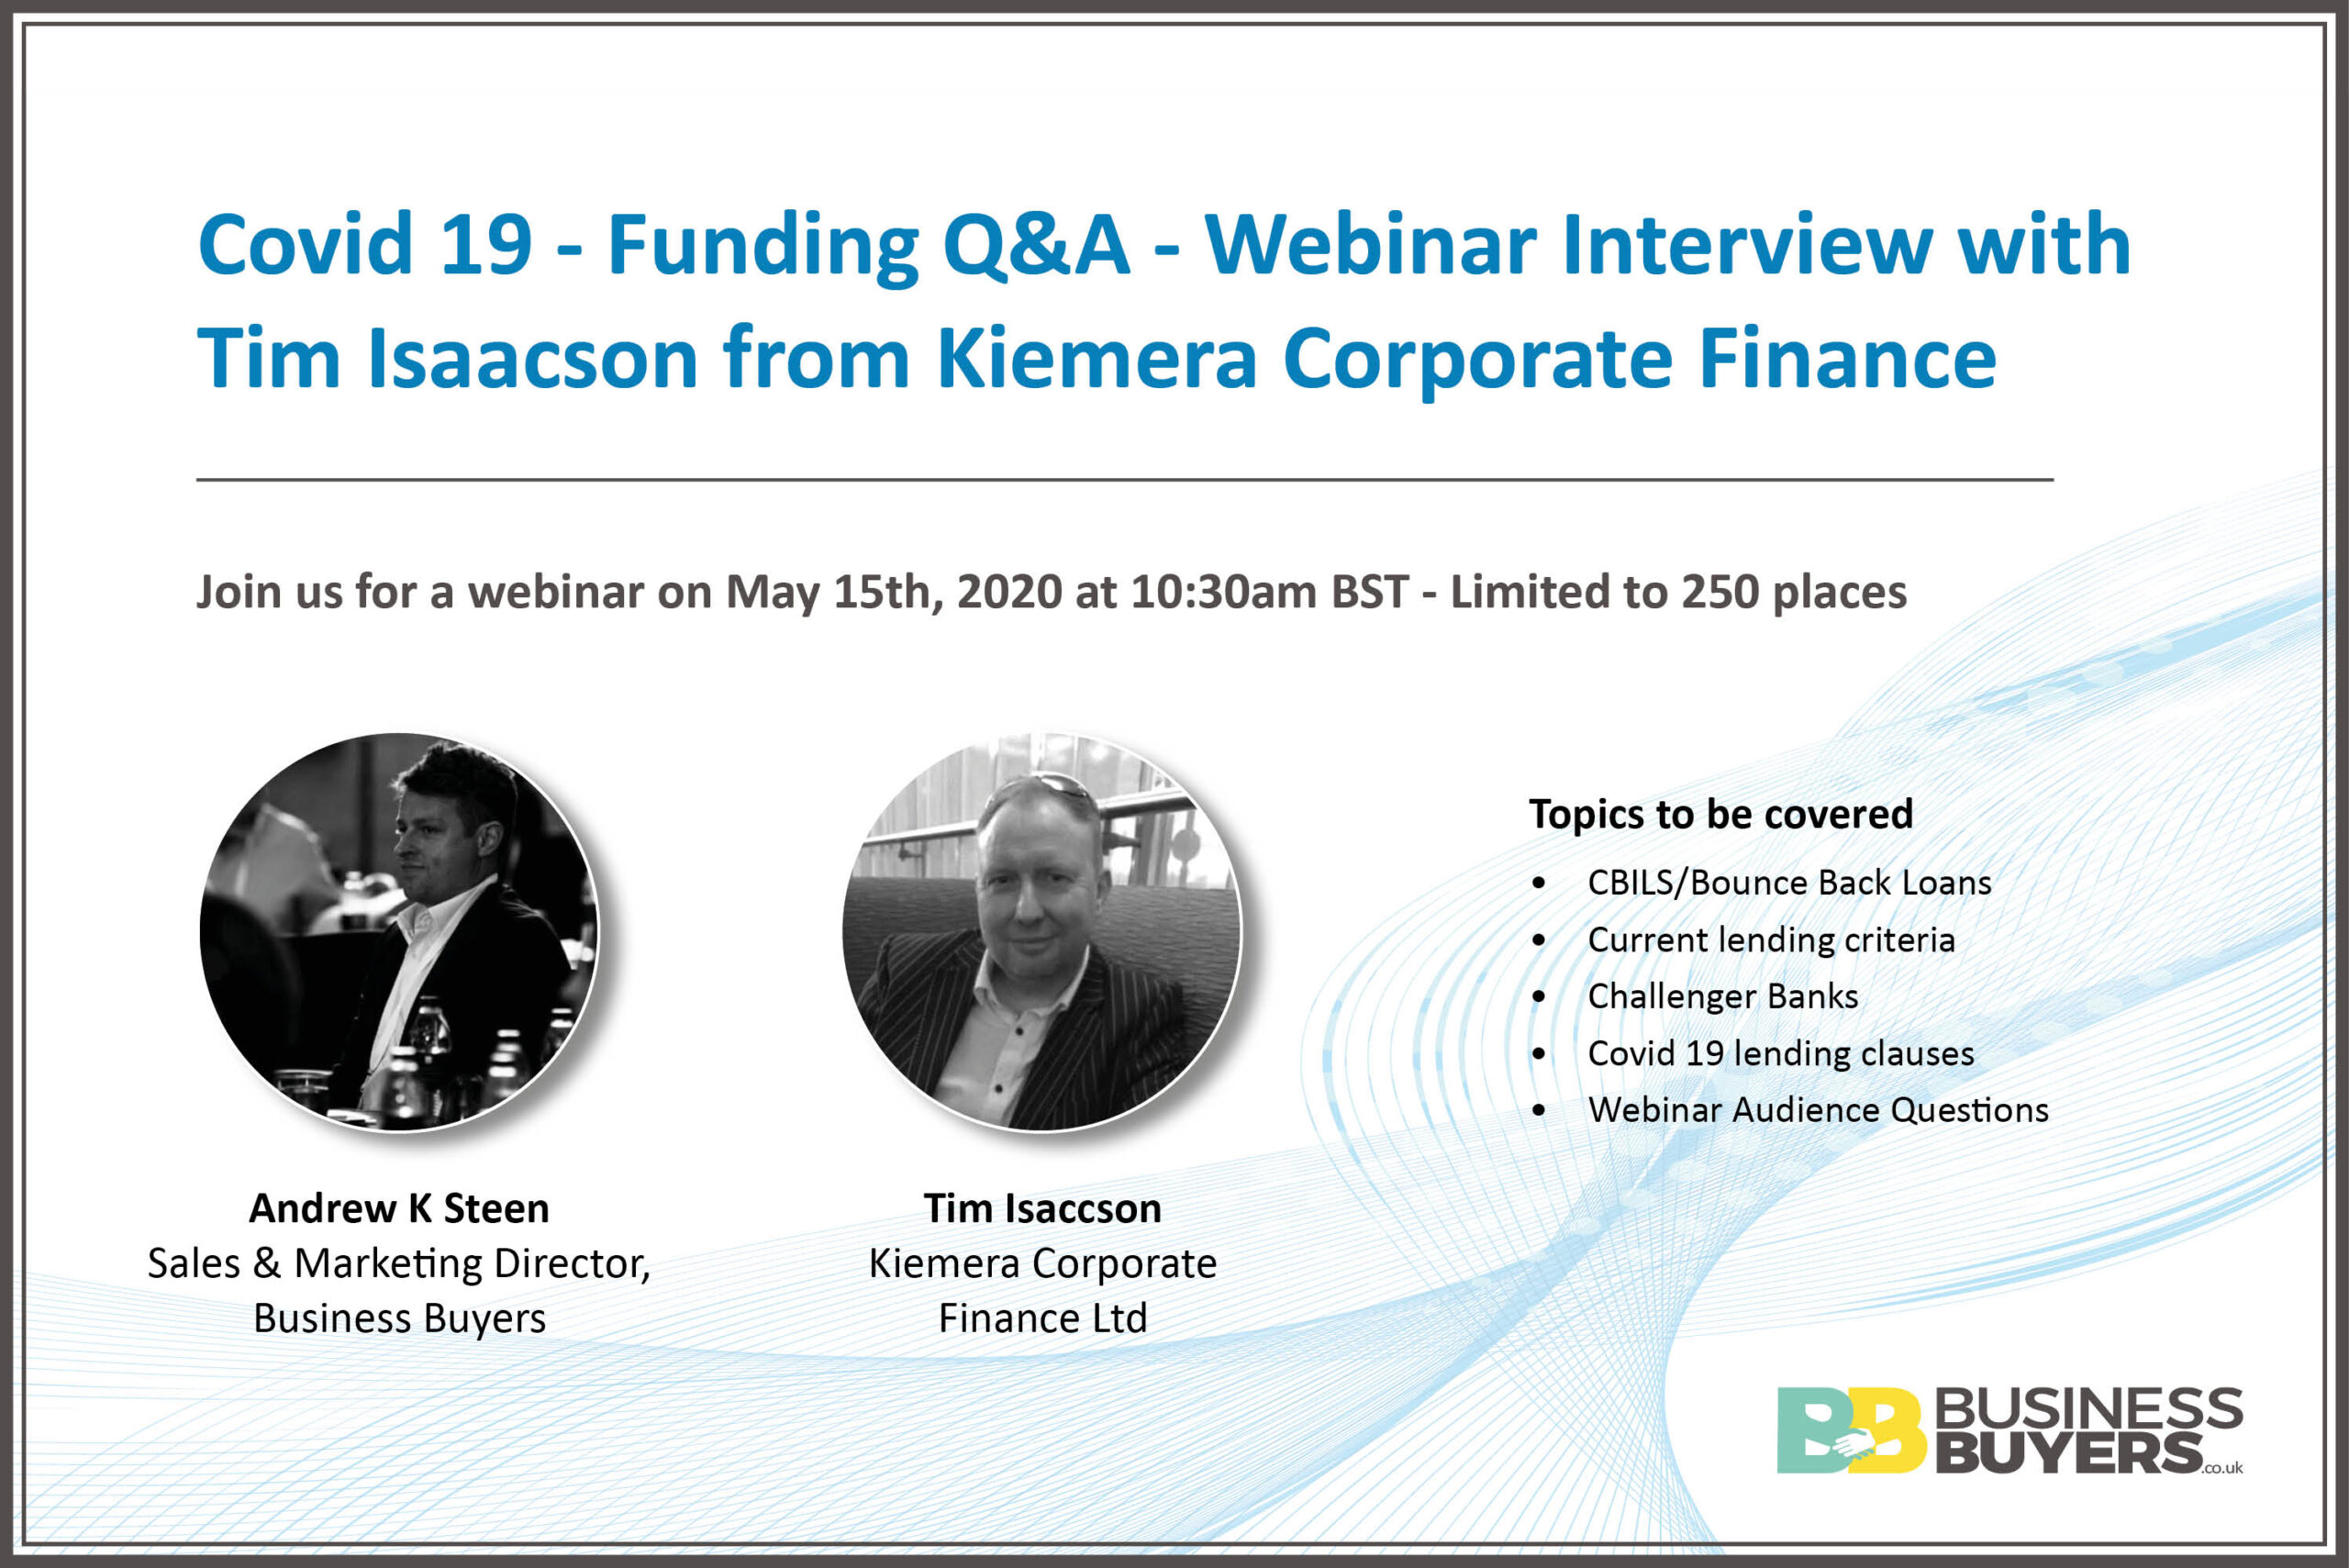 Covid 19 – Funding Q&A – Webinar Interview with Tim Isaacson from Kiemera Corporate Finance